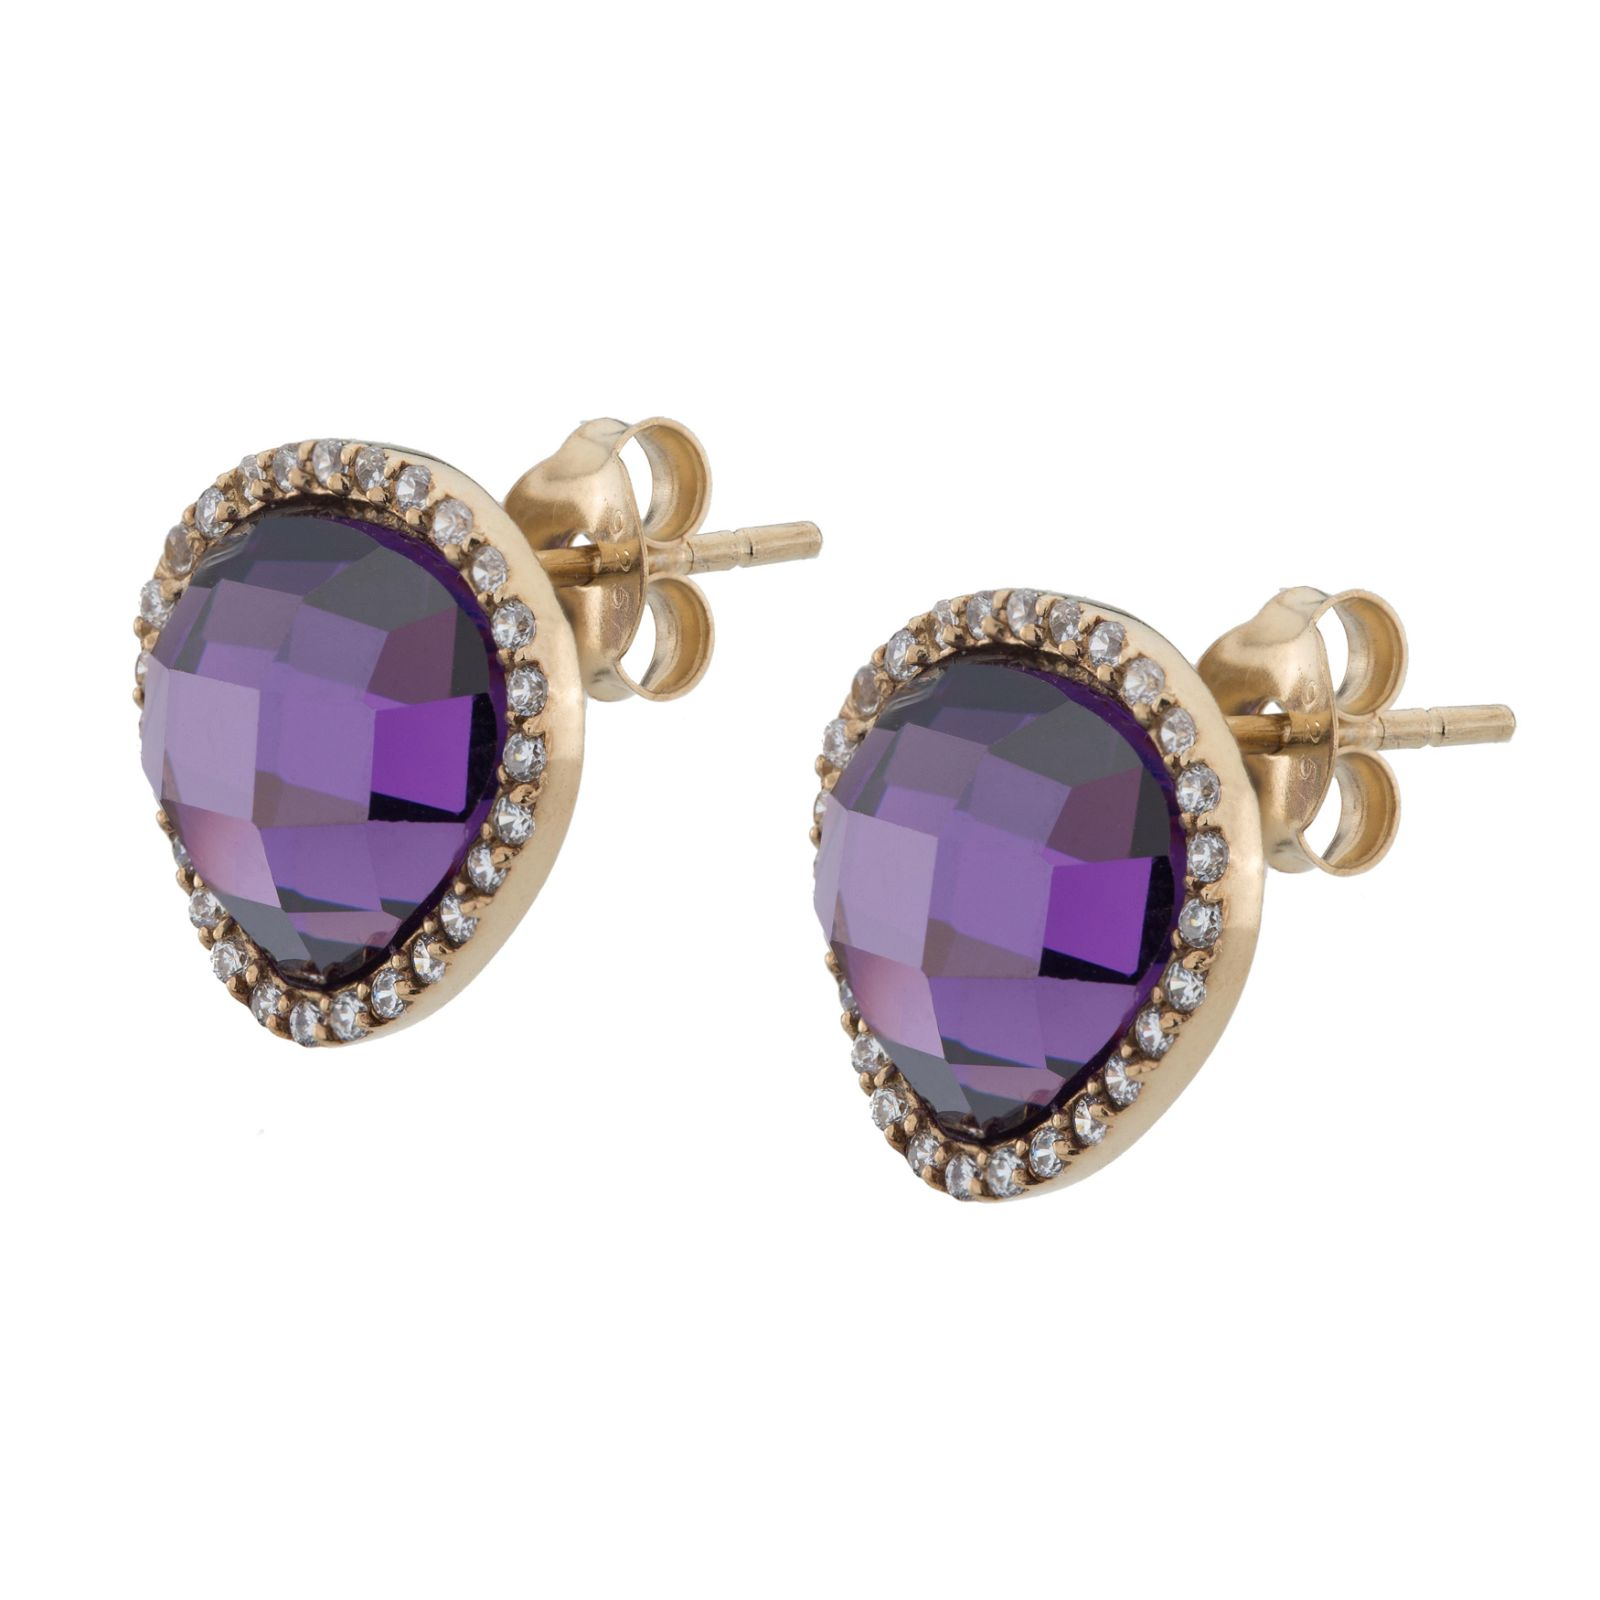 14K Gold over Silver Pave Halo Stud Earrings